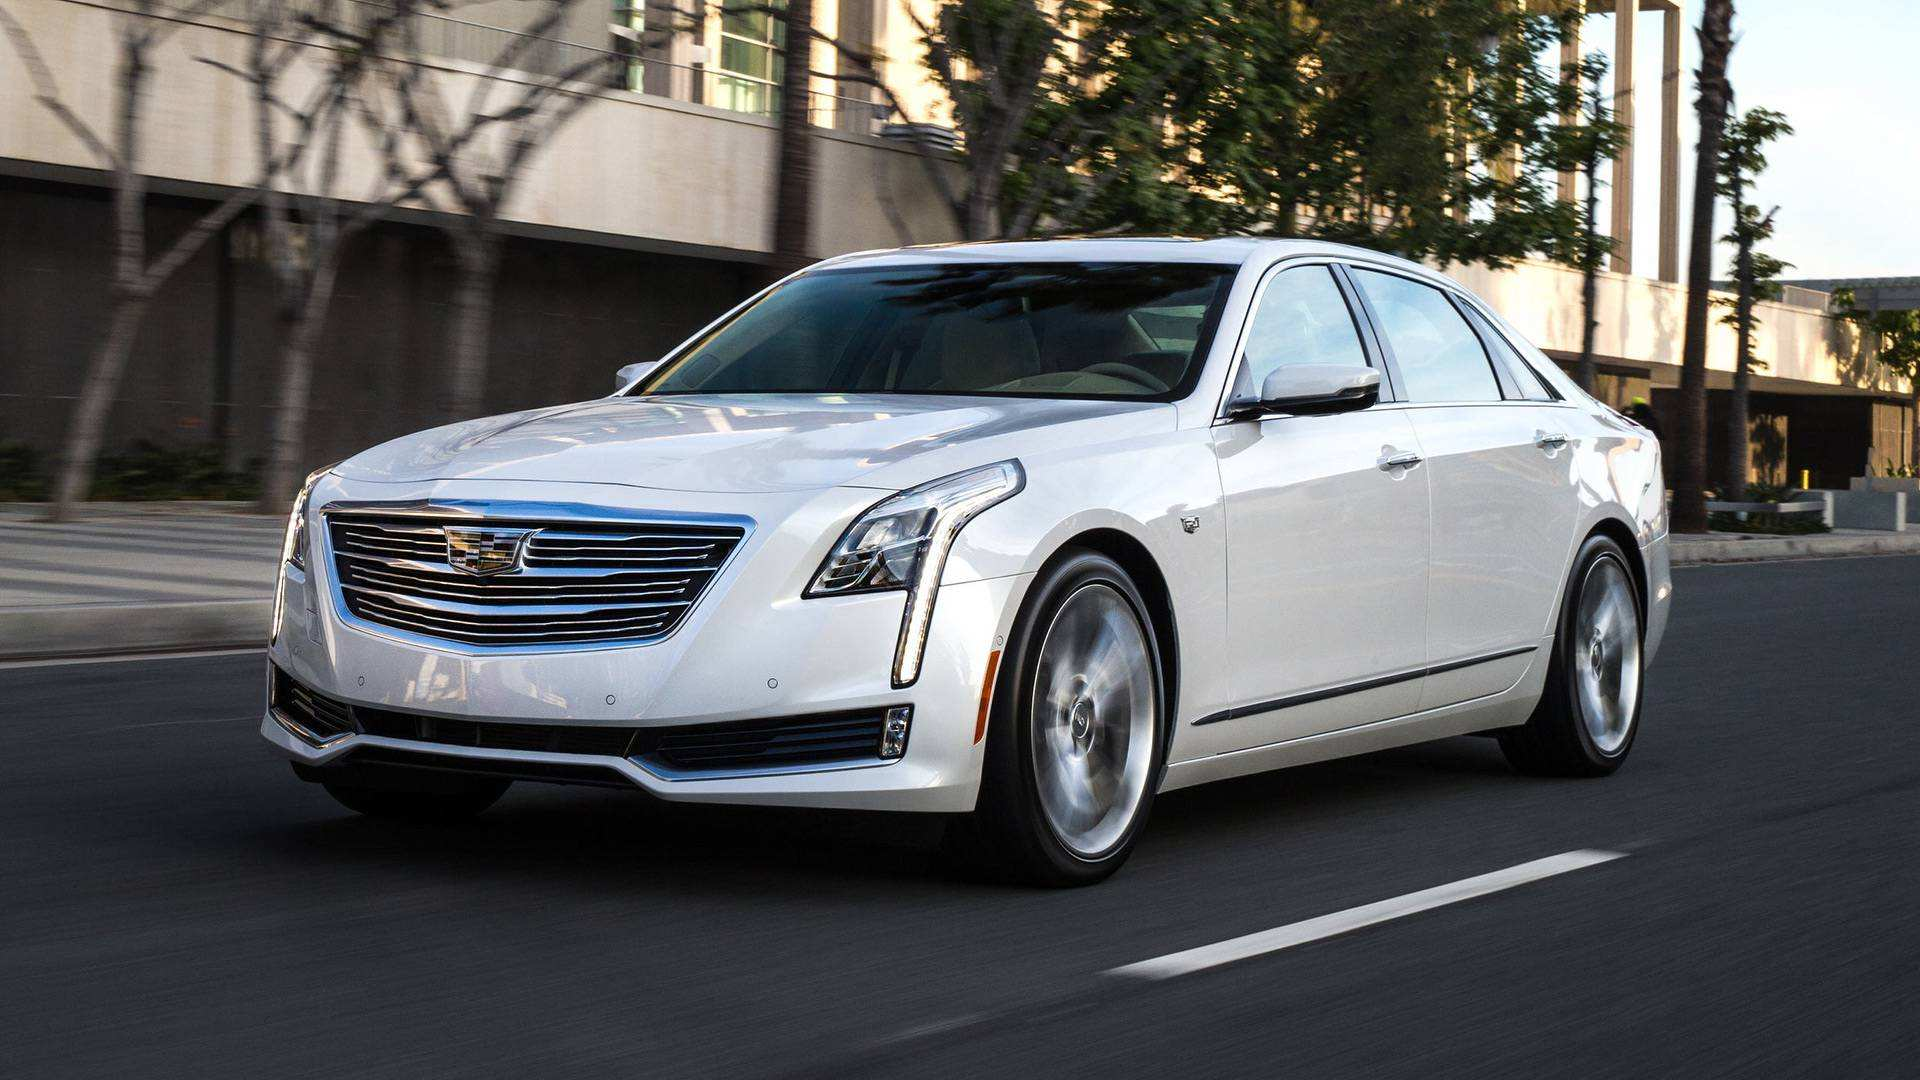 35 The 2020 Cadillac Ct6 V8 Performance And New Engine